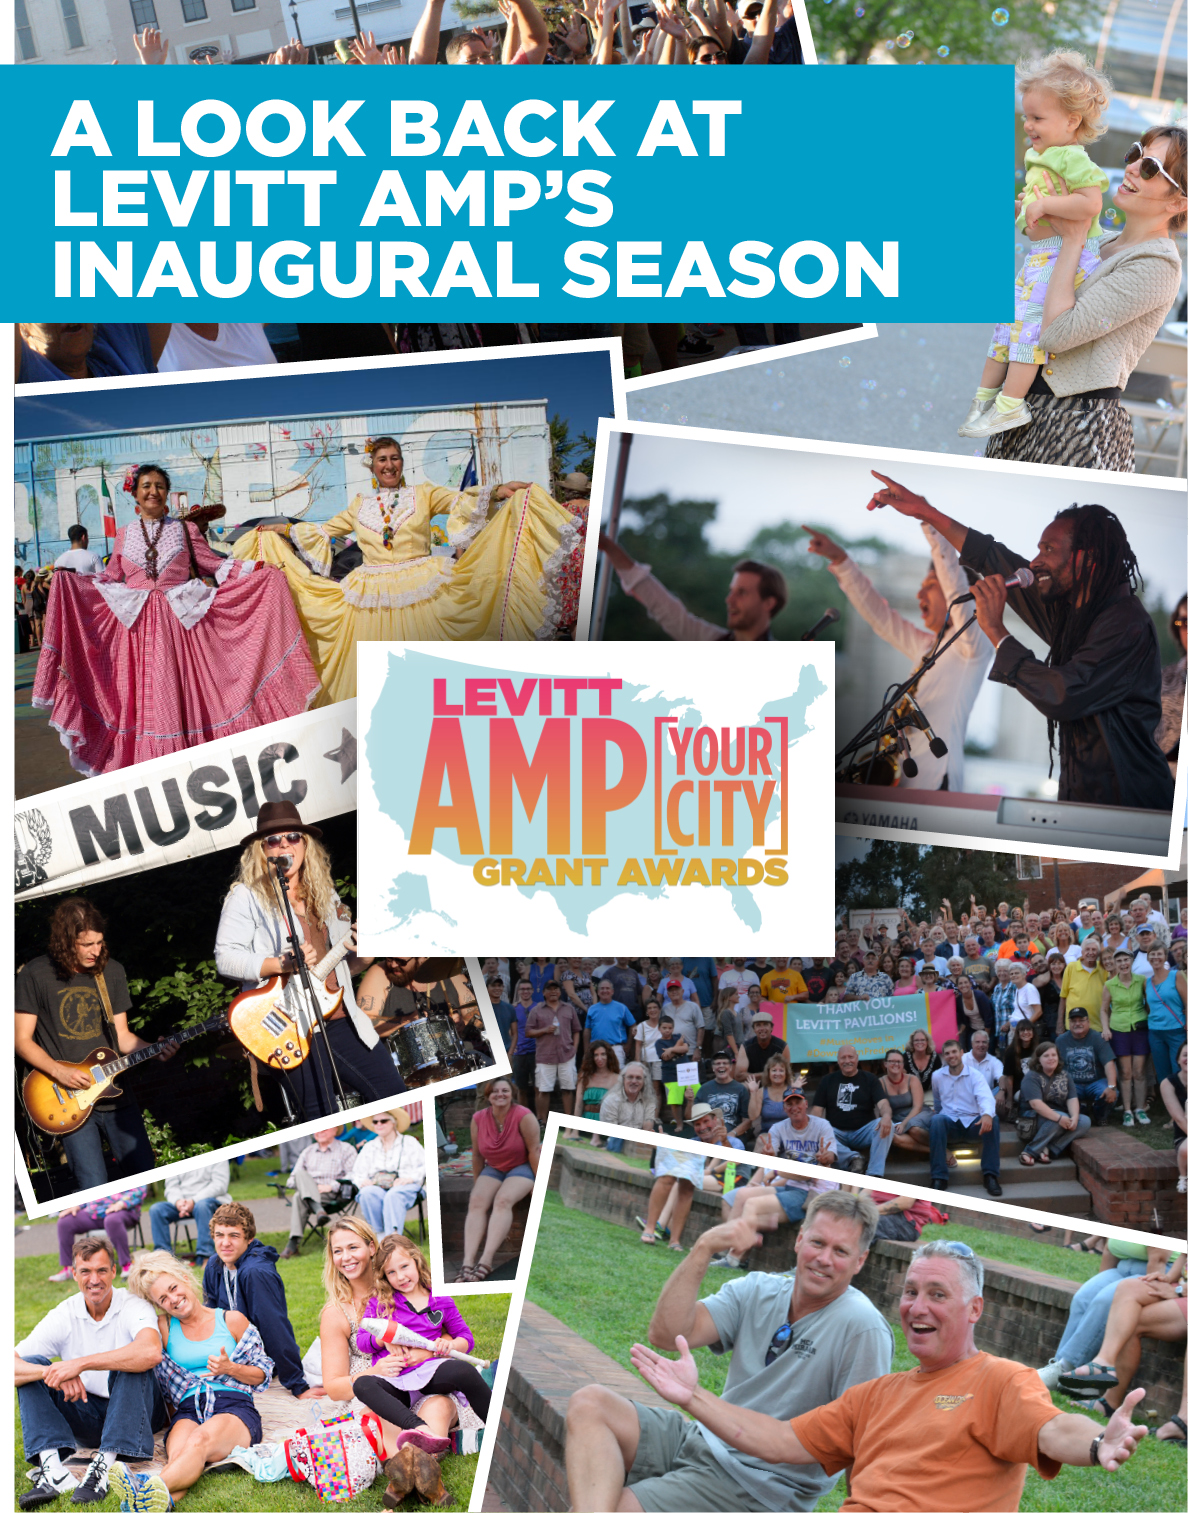 A Look Back at Levitt AMP's Inaguaral Season